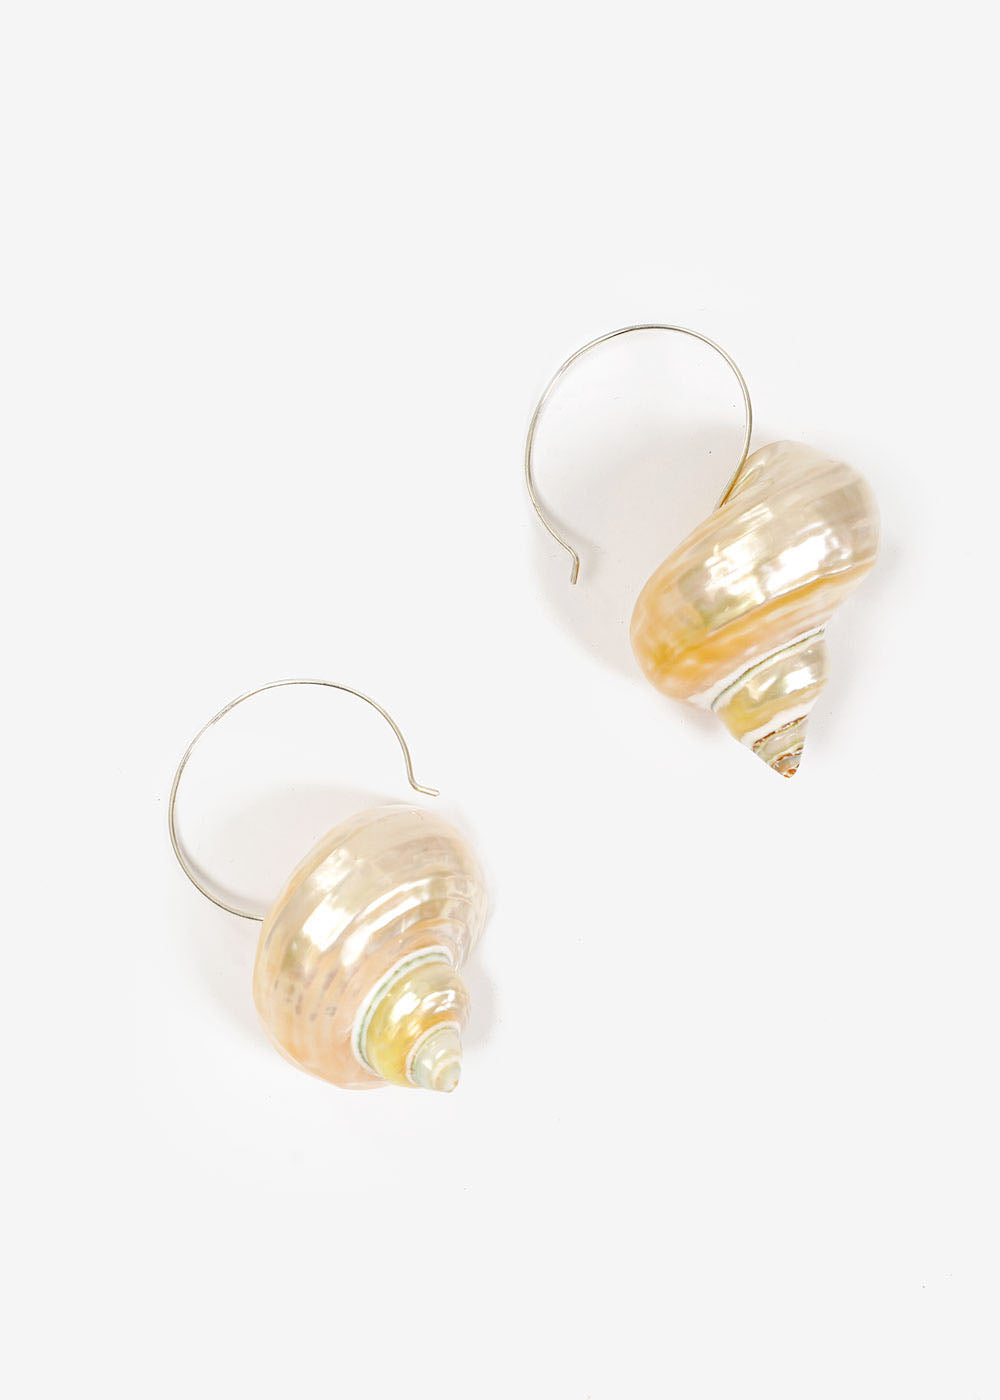 Turbo Shell Earrings - New Classics Studios